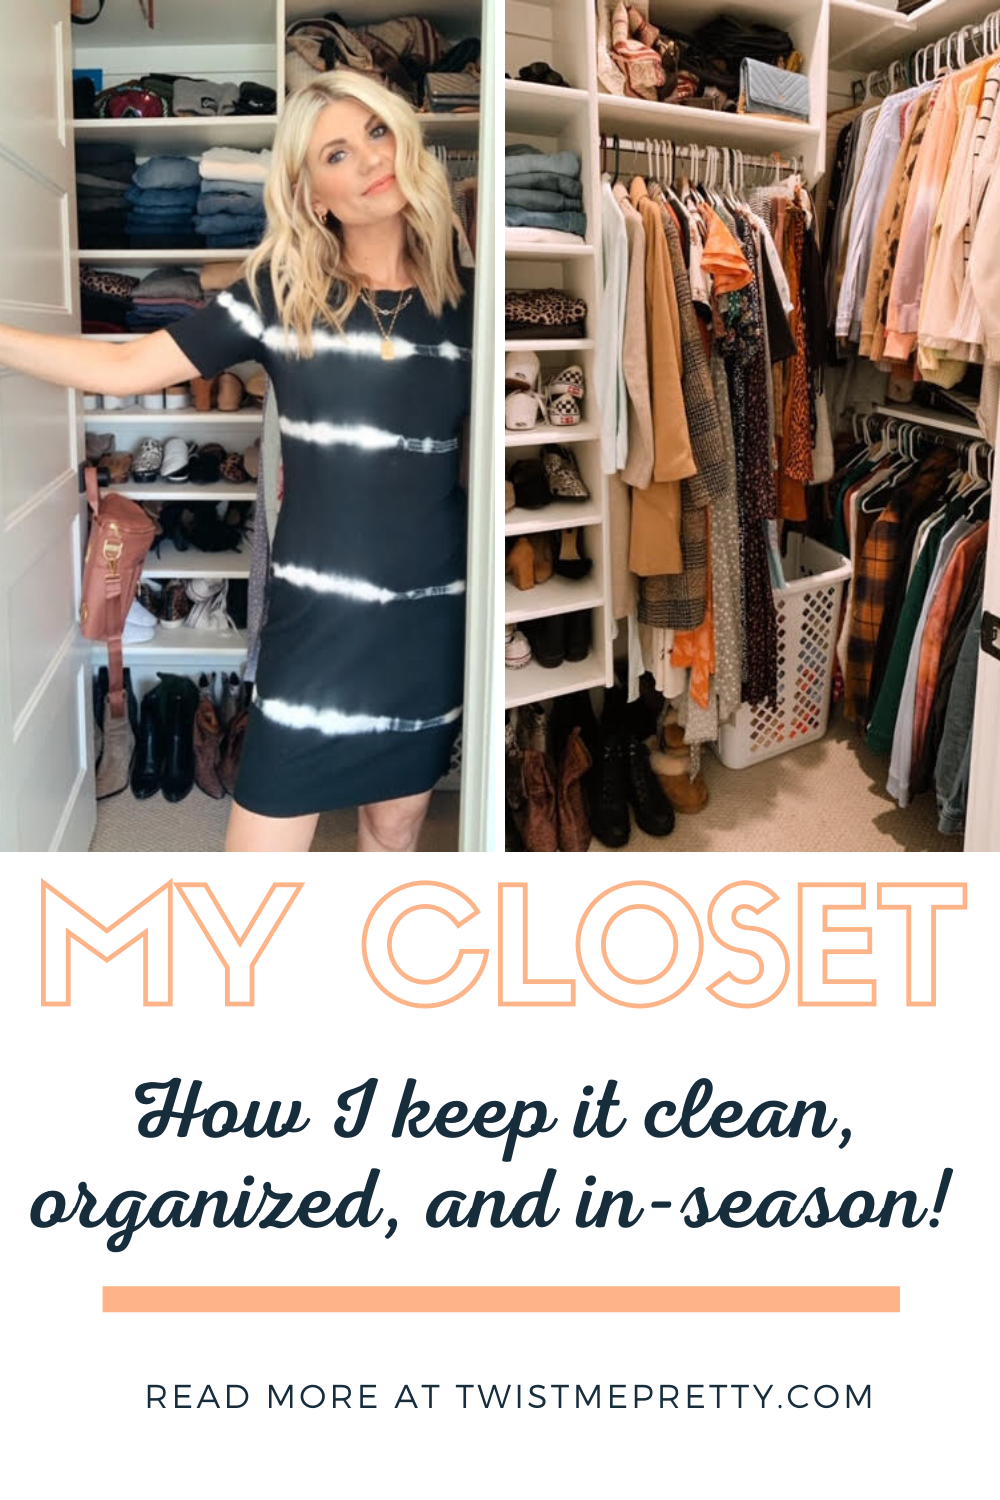 My closet- how I keep it clean, organized, and in-season! www.twistmepretty.com